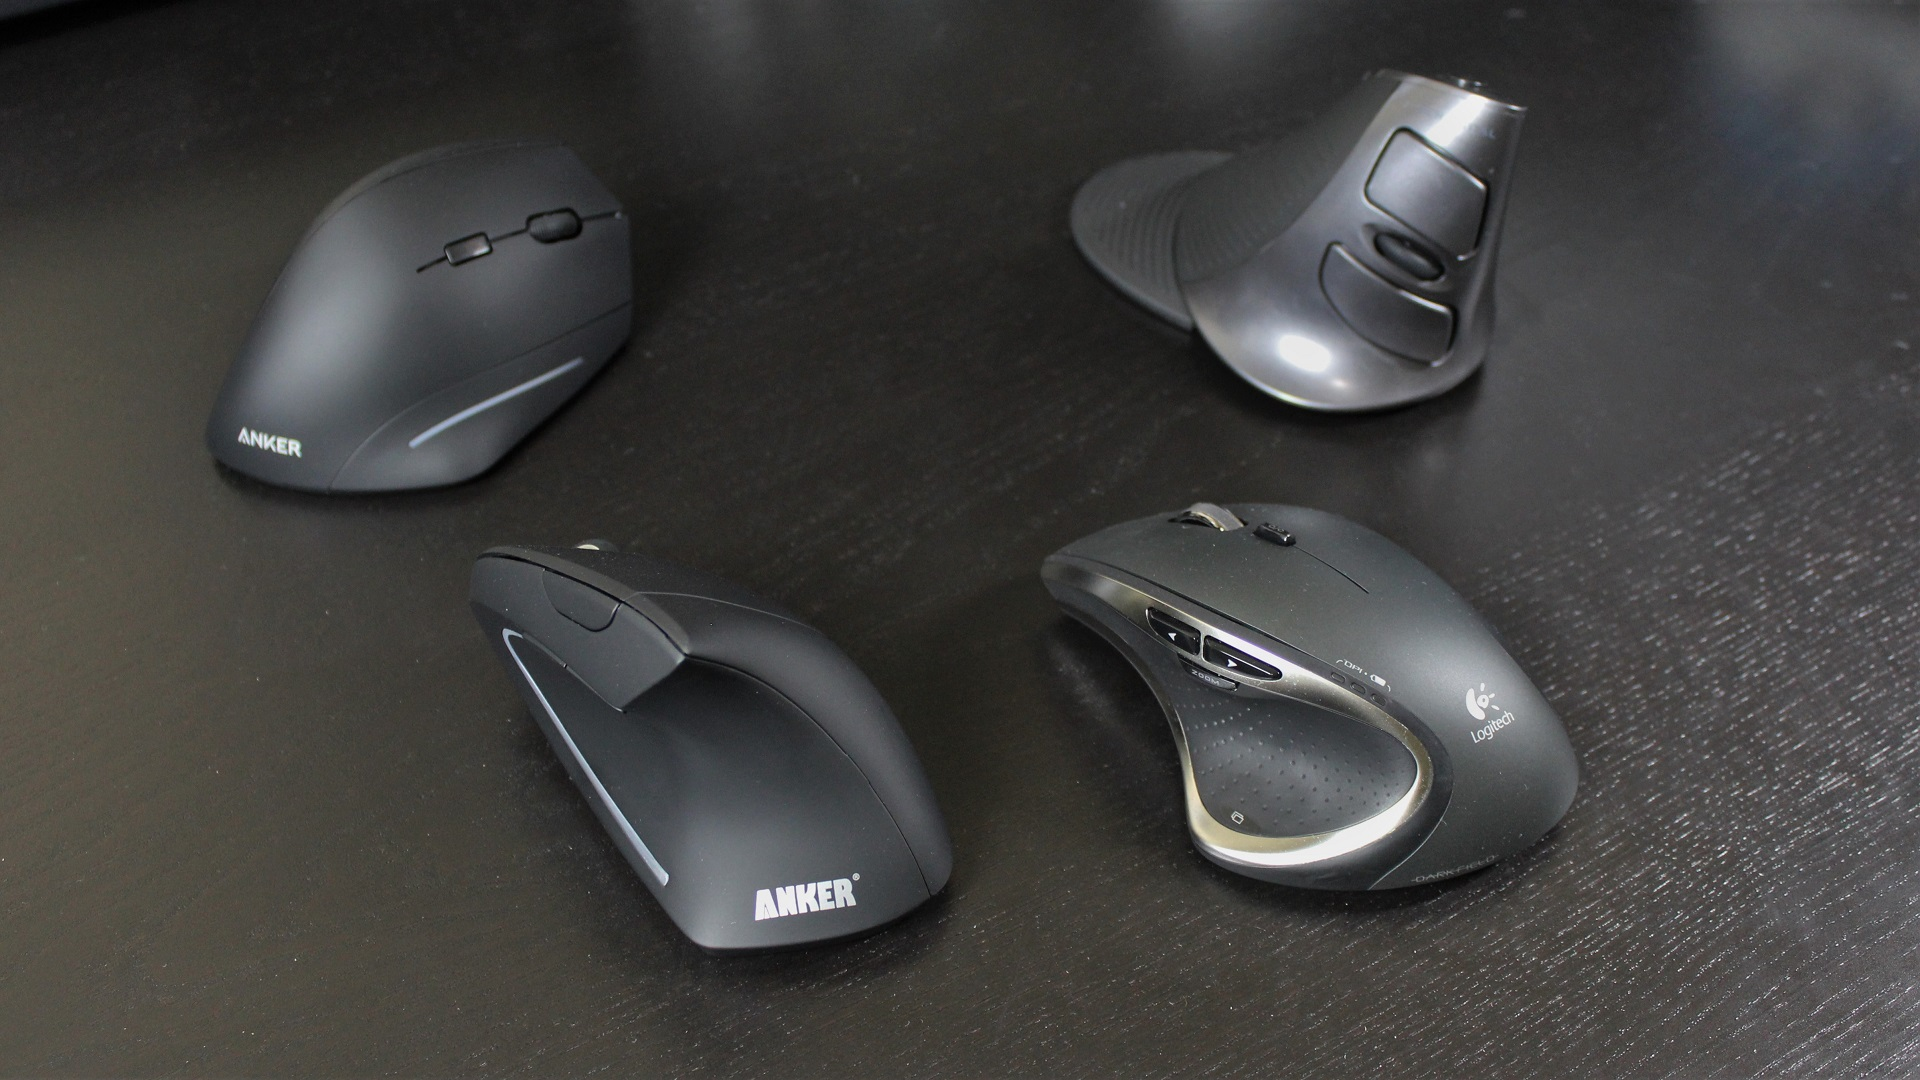 Testing the Ergonomics of Vertical Mice - Tested